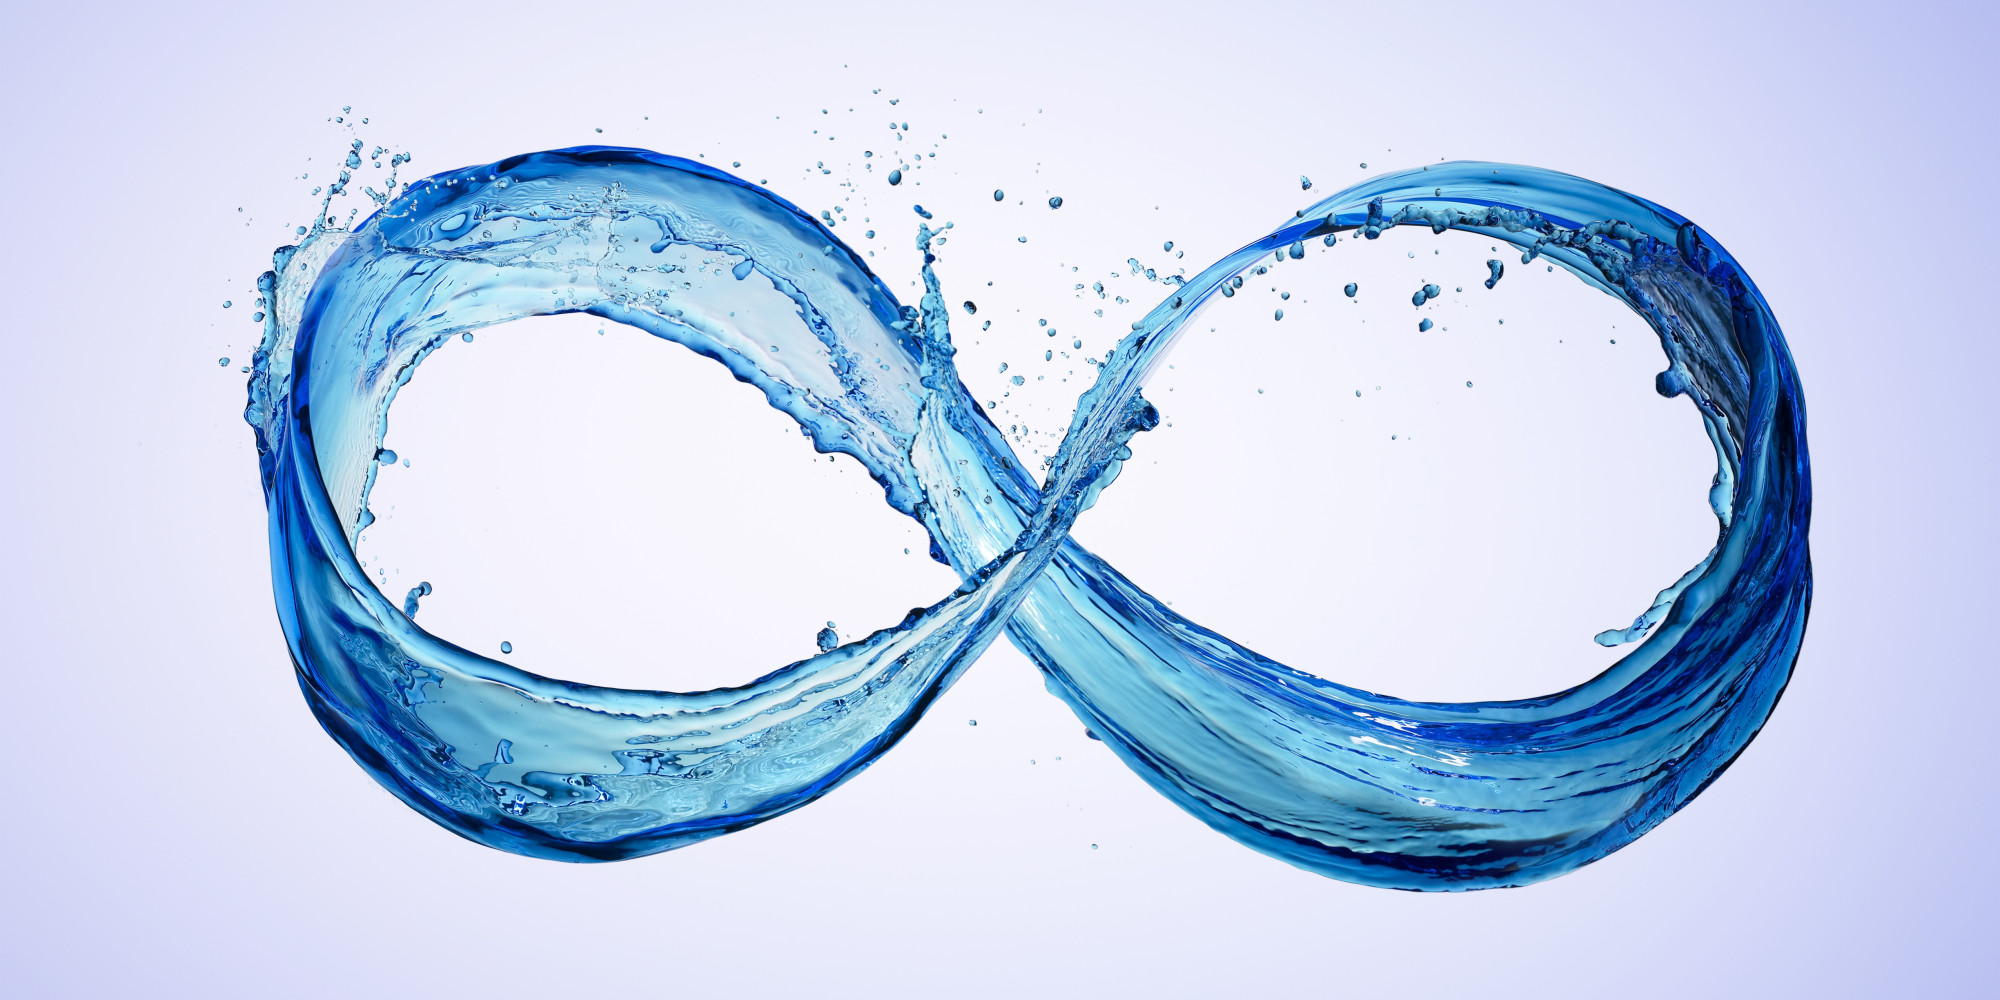 Water taking the shape of an infinity symbol